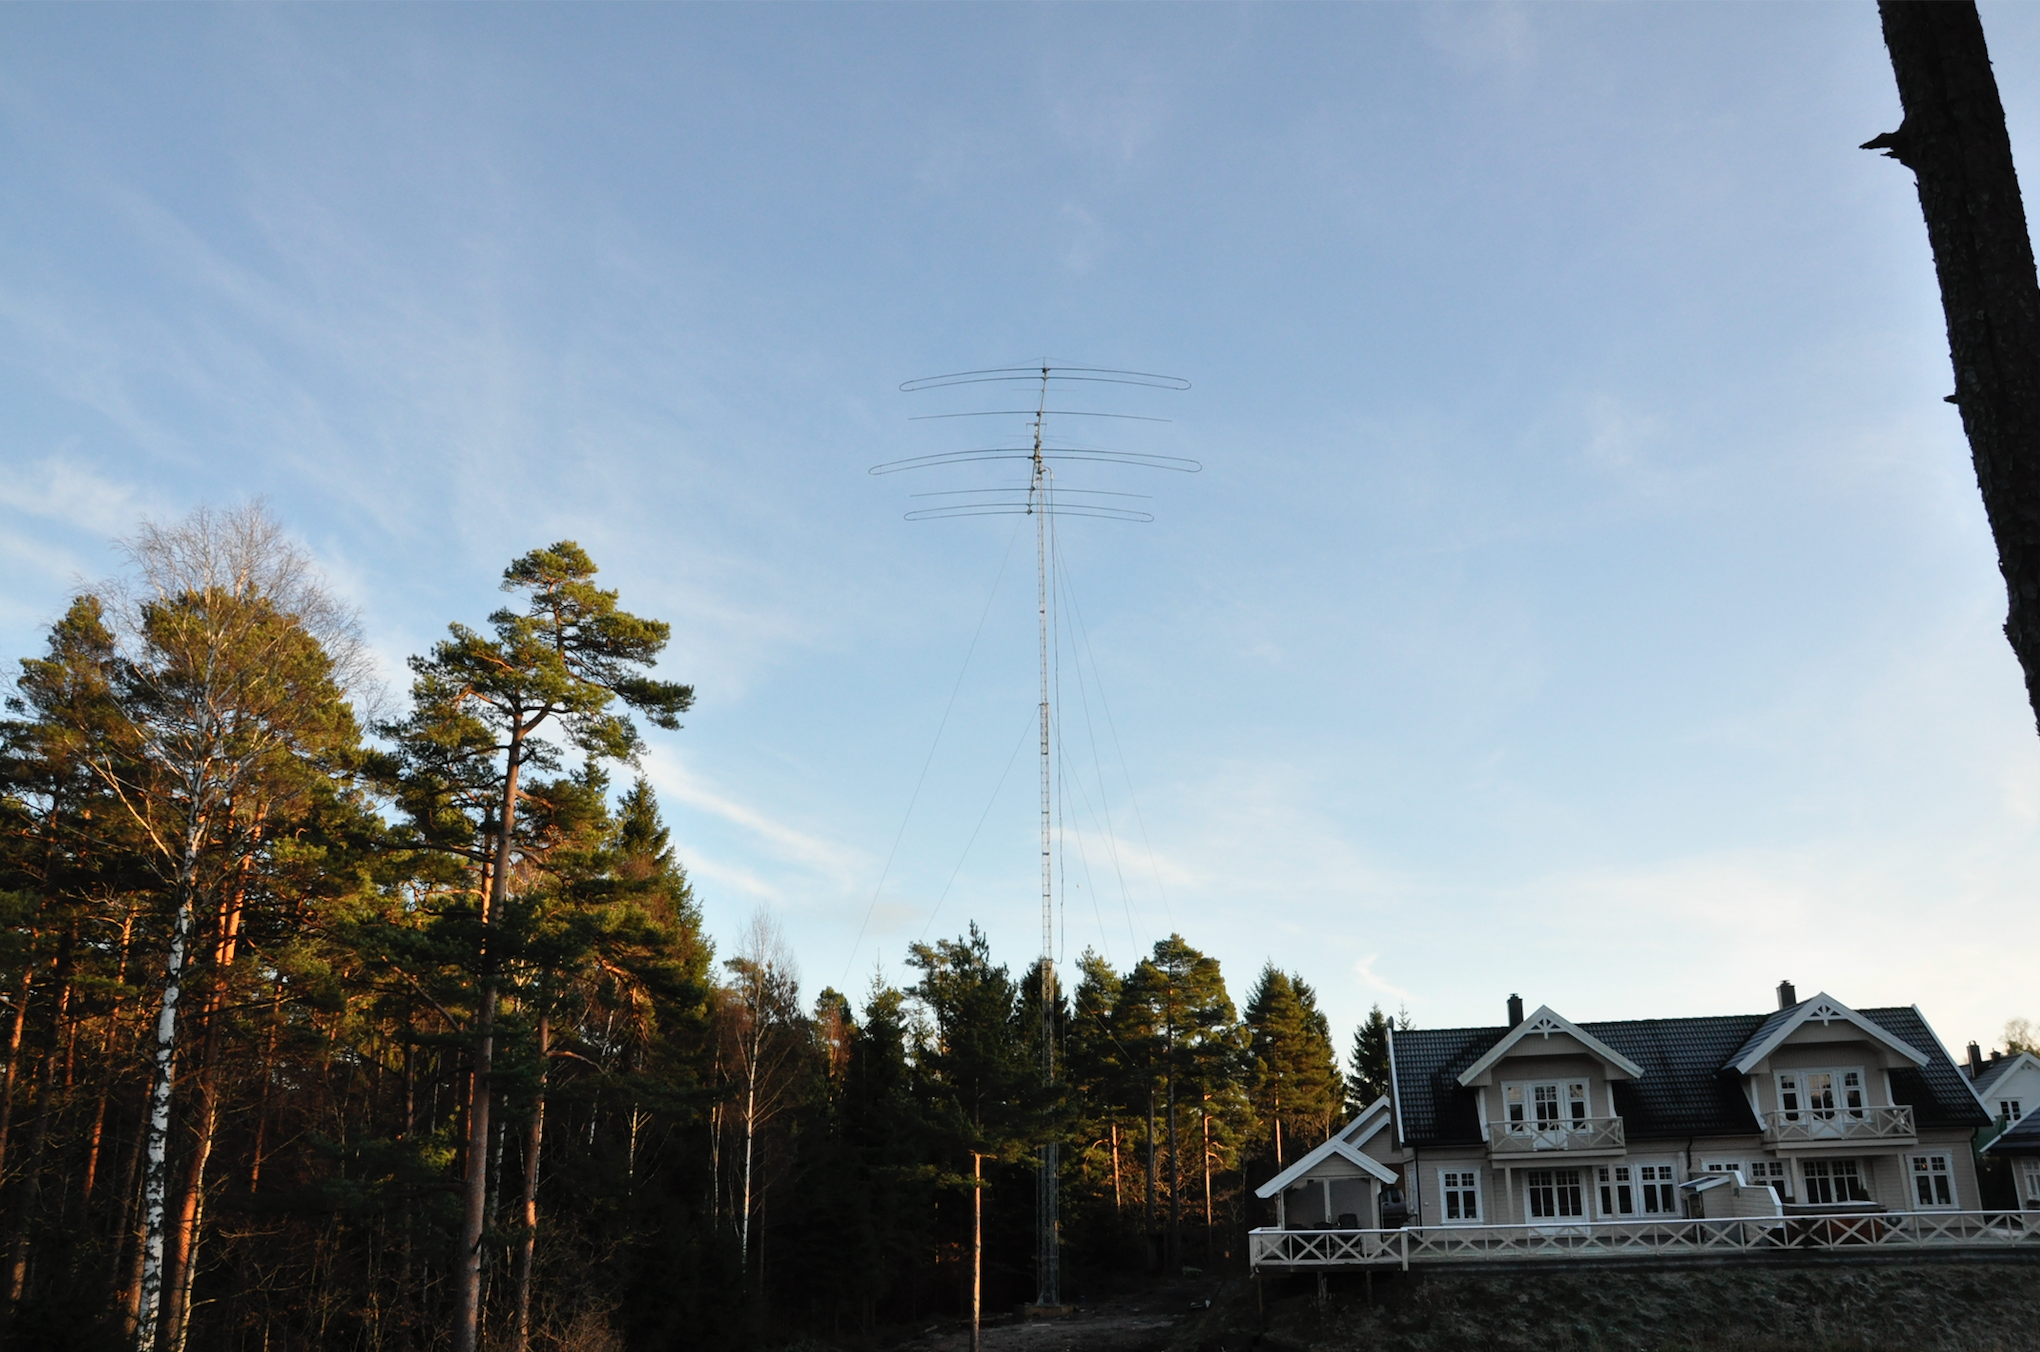 Høvåg, Norway DB-42@37 meter crank-up tower LA3ZPA